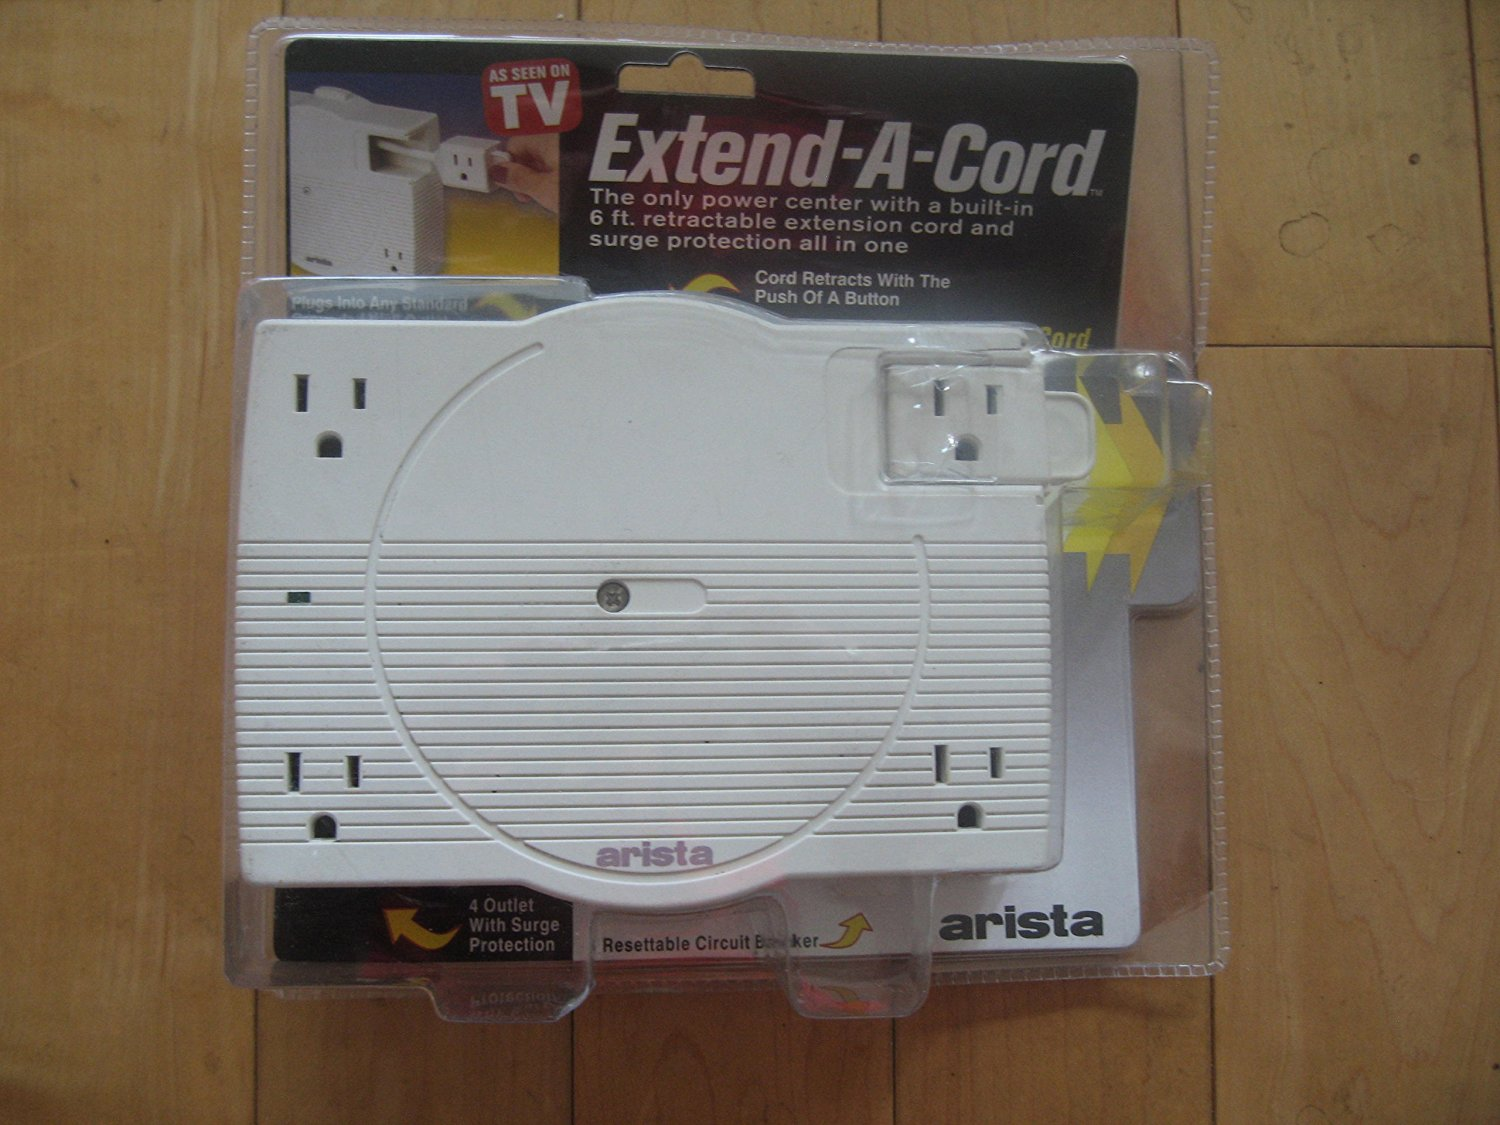 Arista Extendable Cord Extend-A-Cord Power Center with 6 ft. Retractable Extension Cord Off-White (52-1000)